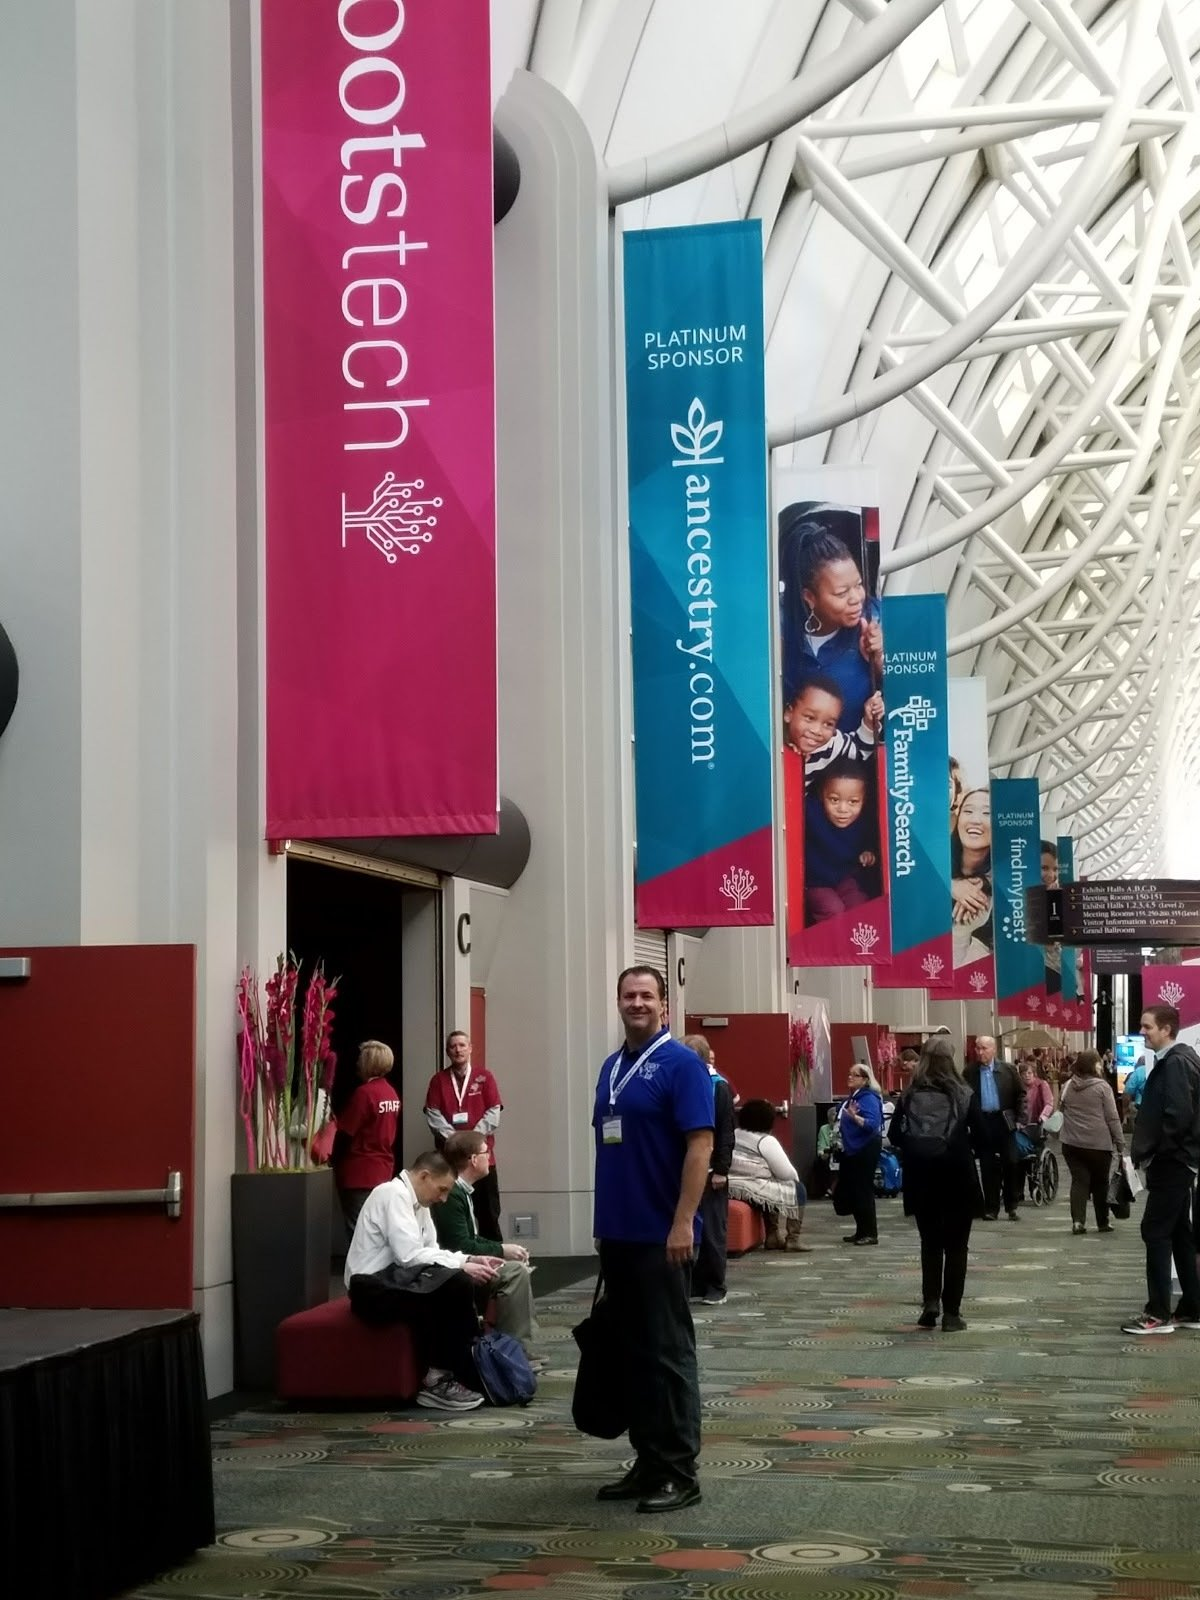 Main hallway at RootsTech